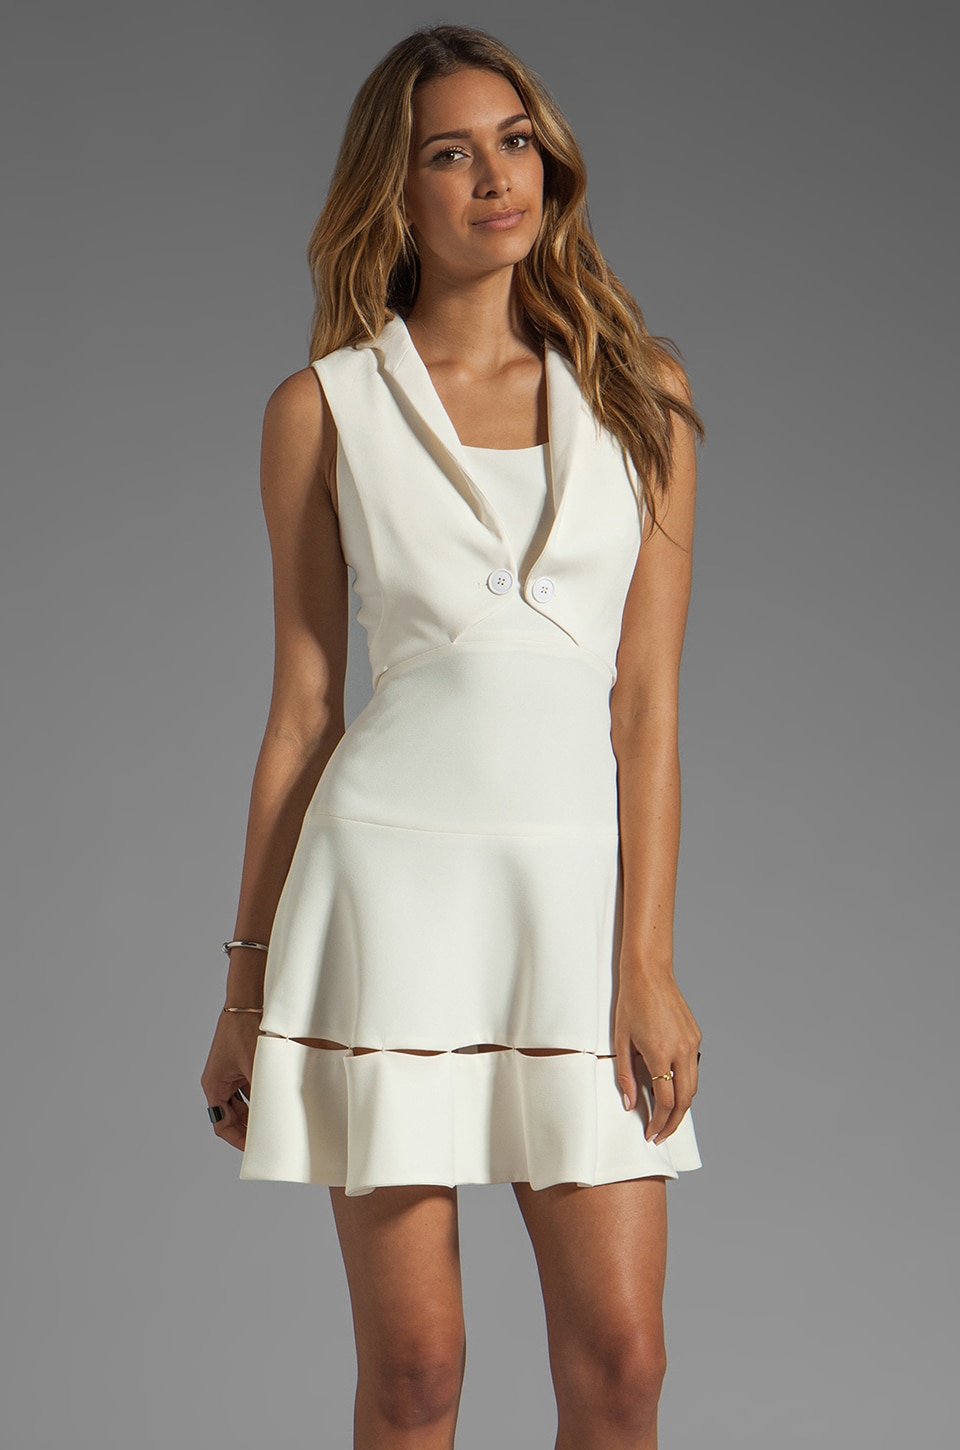 Z Spoke by Zac Posen Sleeveless Dress in Ivory